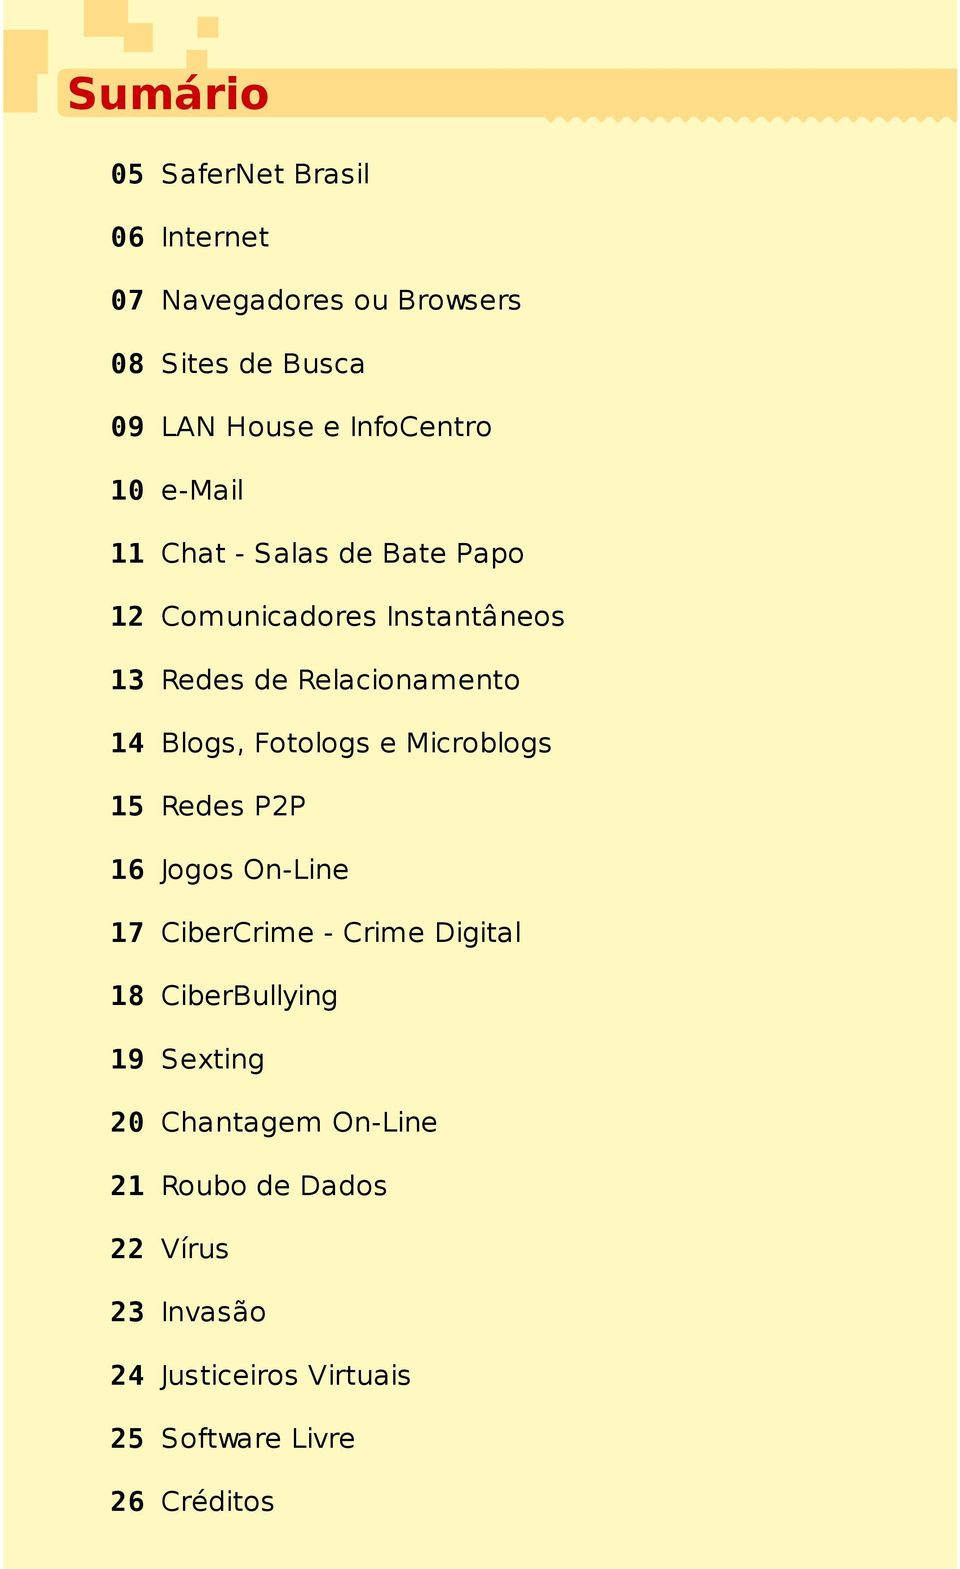 Fotologs e Microblogs 15 Redes P2P 16 Jogos On-Line 17 CiberCrime - Crime Digital 18 CiberBullying 19 Sexting